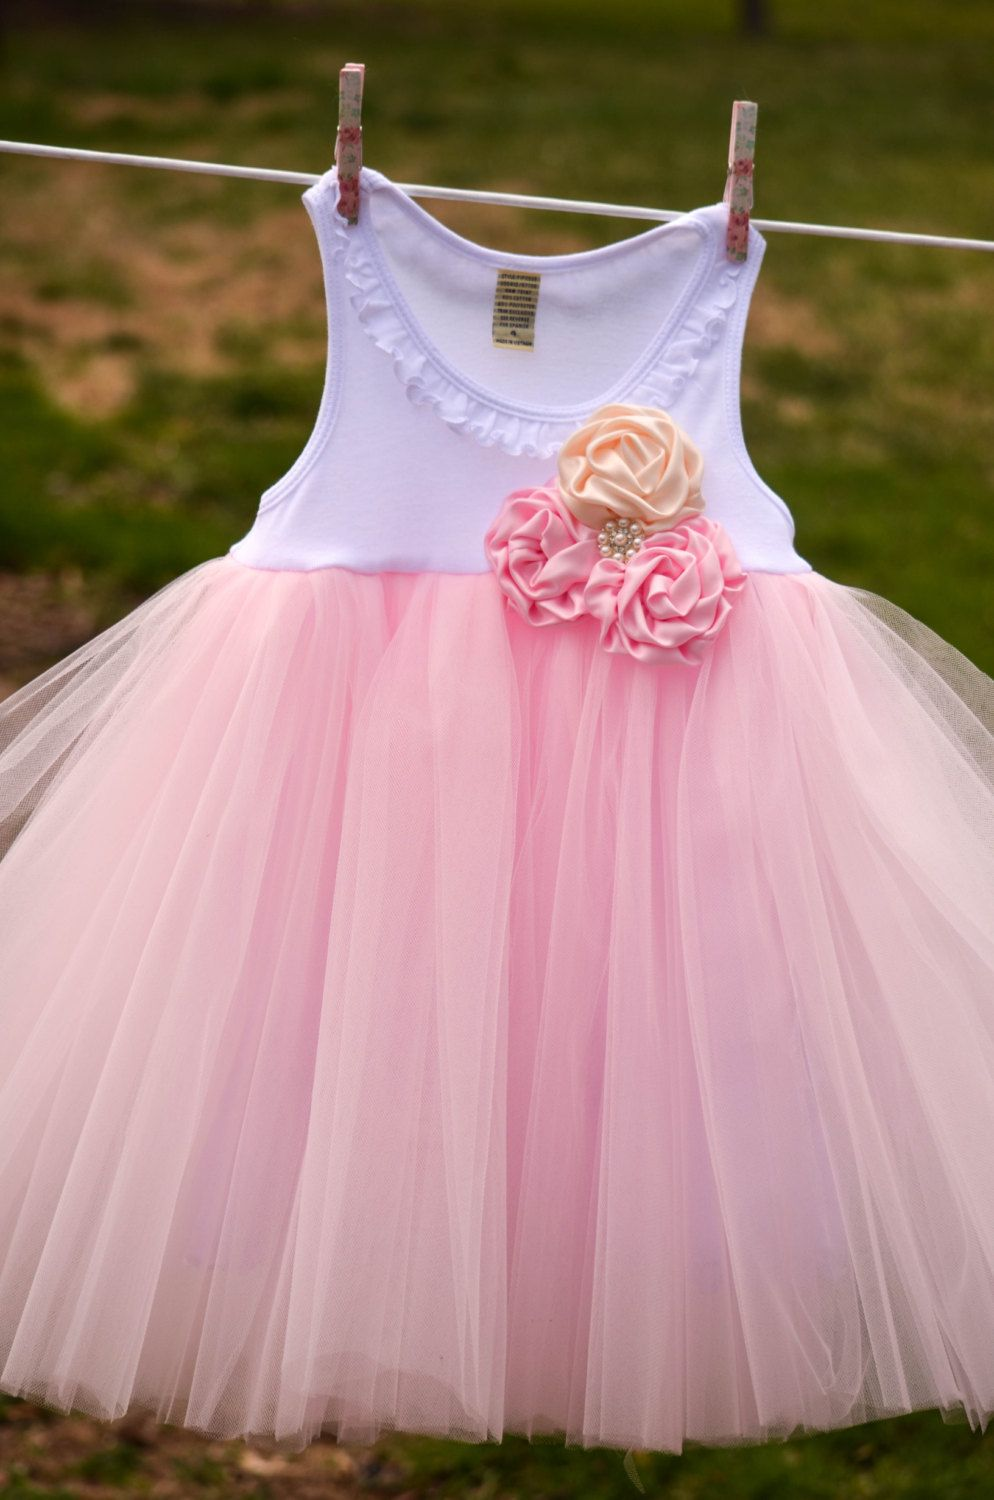 Rose Cluster Shabby Chic Flower Girl Wedding Birthday Tutu Dress ...